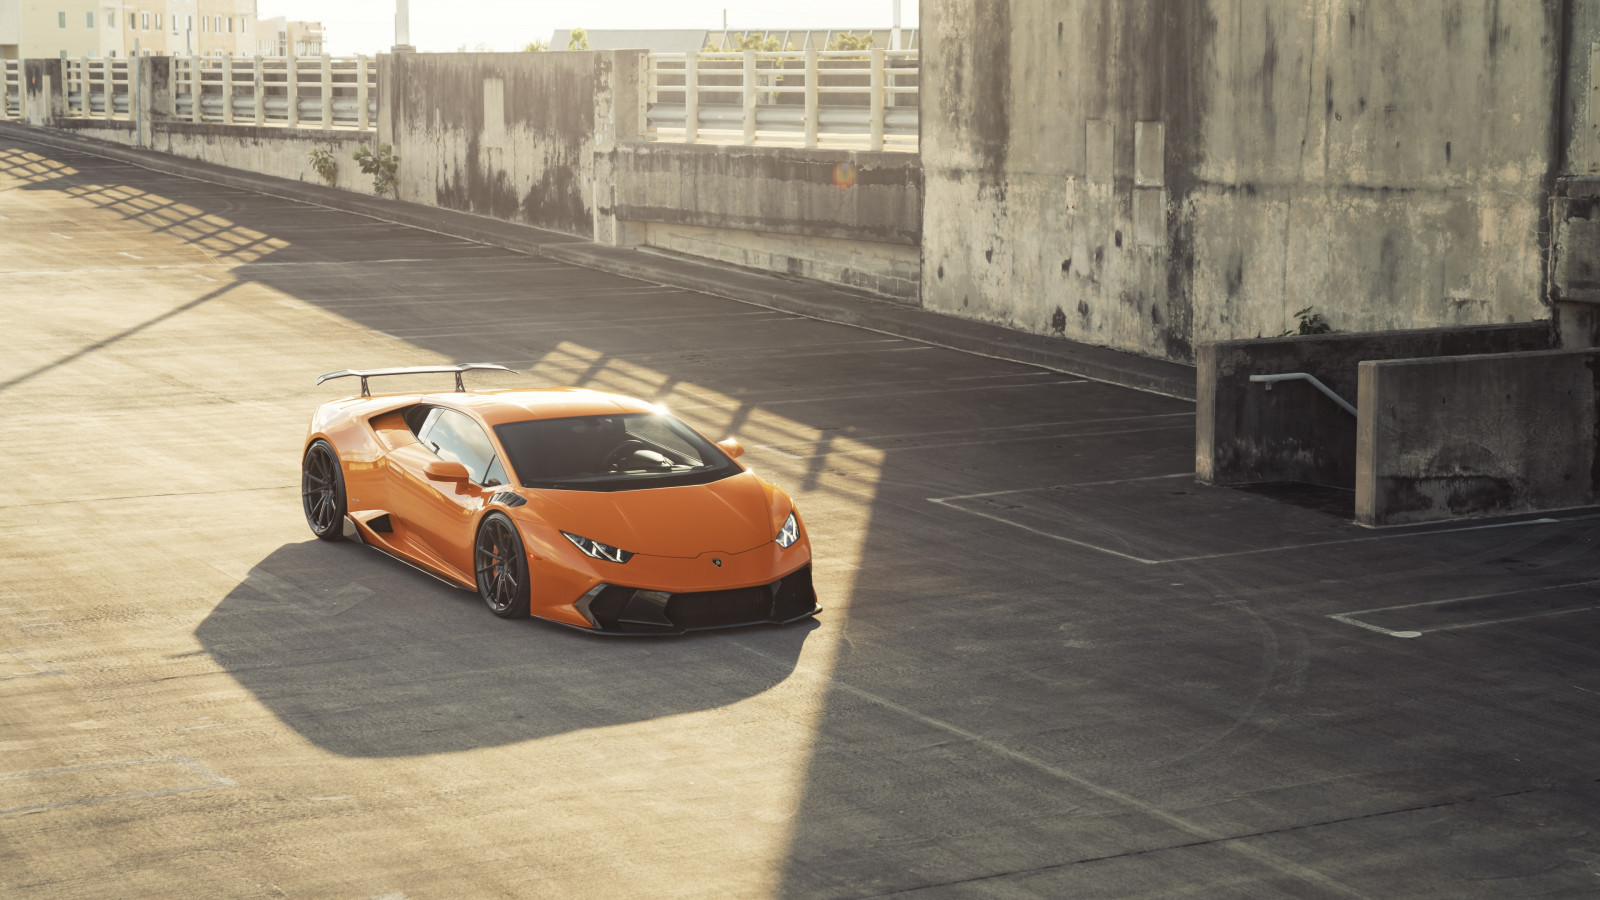 ANRKY Fish Orange Lambo Huracan wallpaper 1600x900